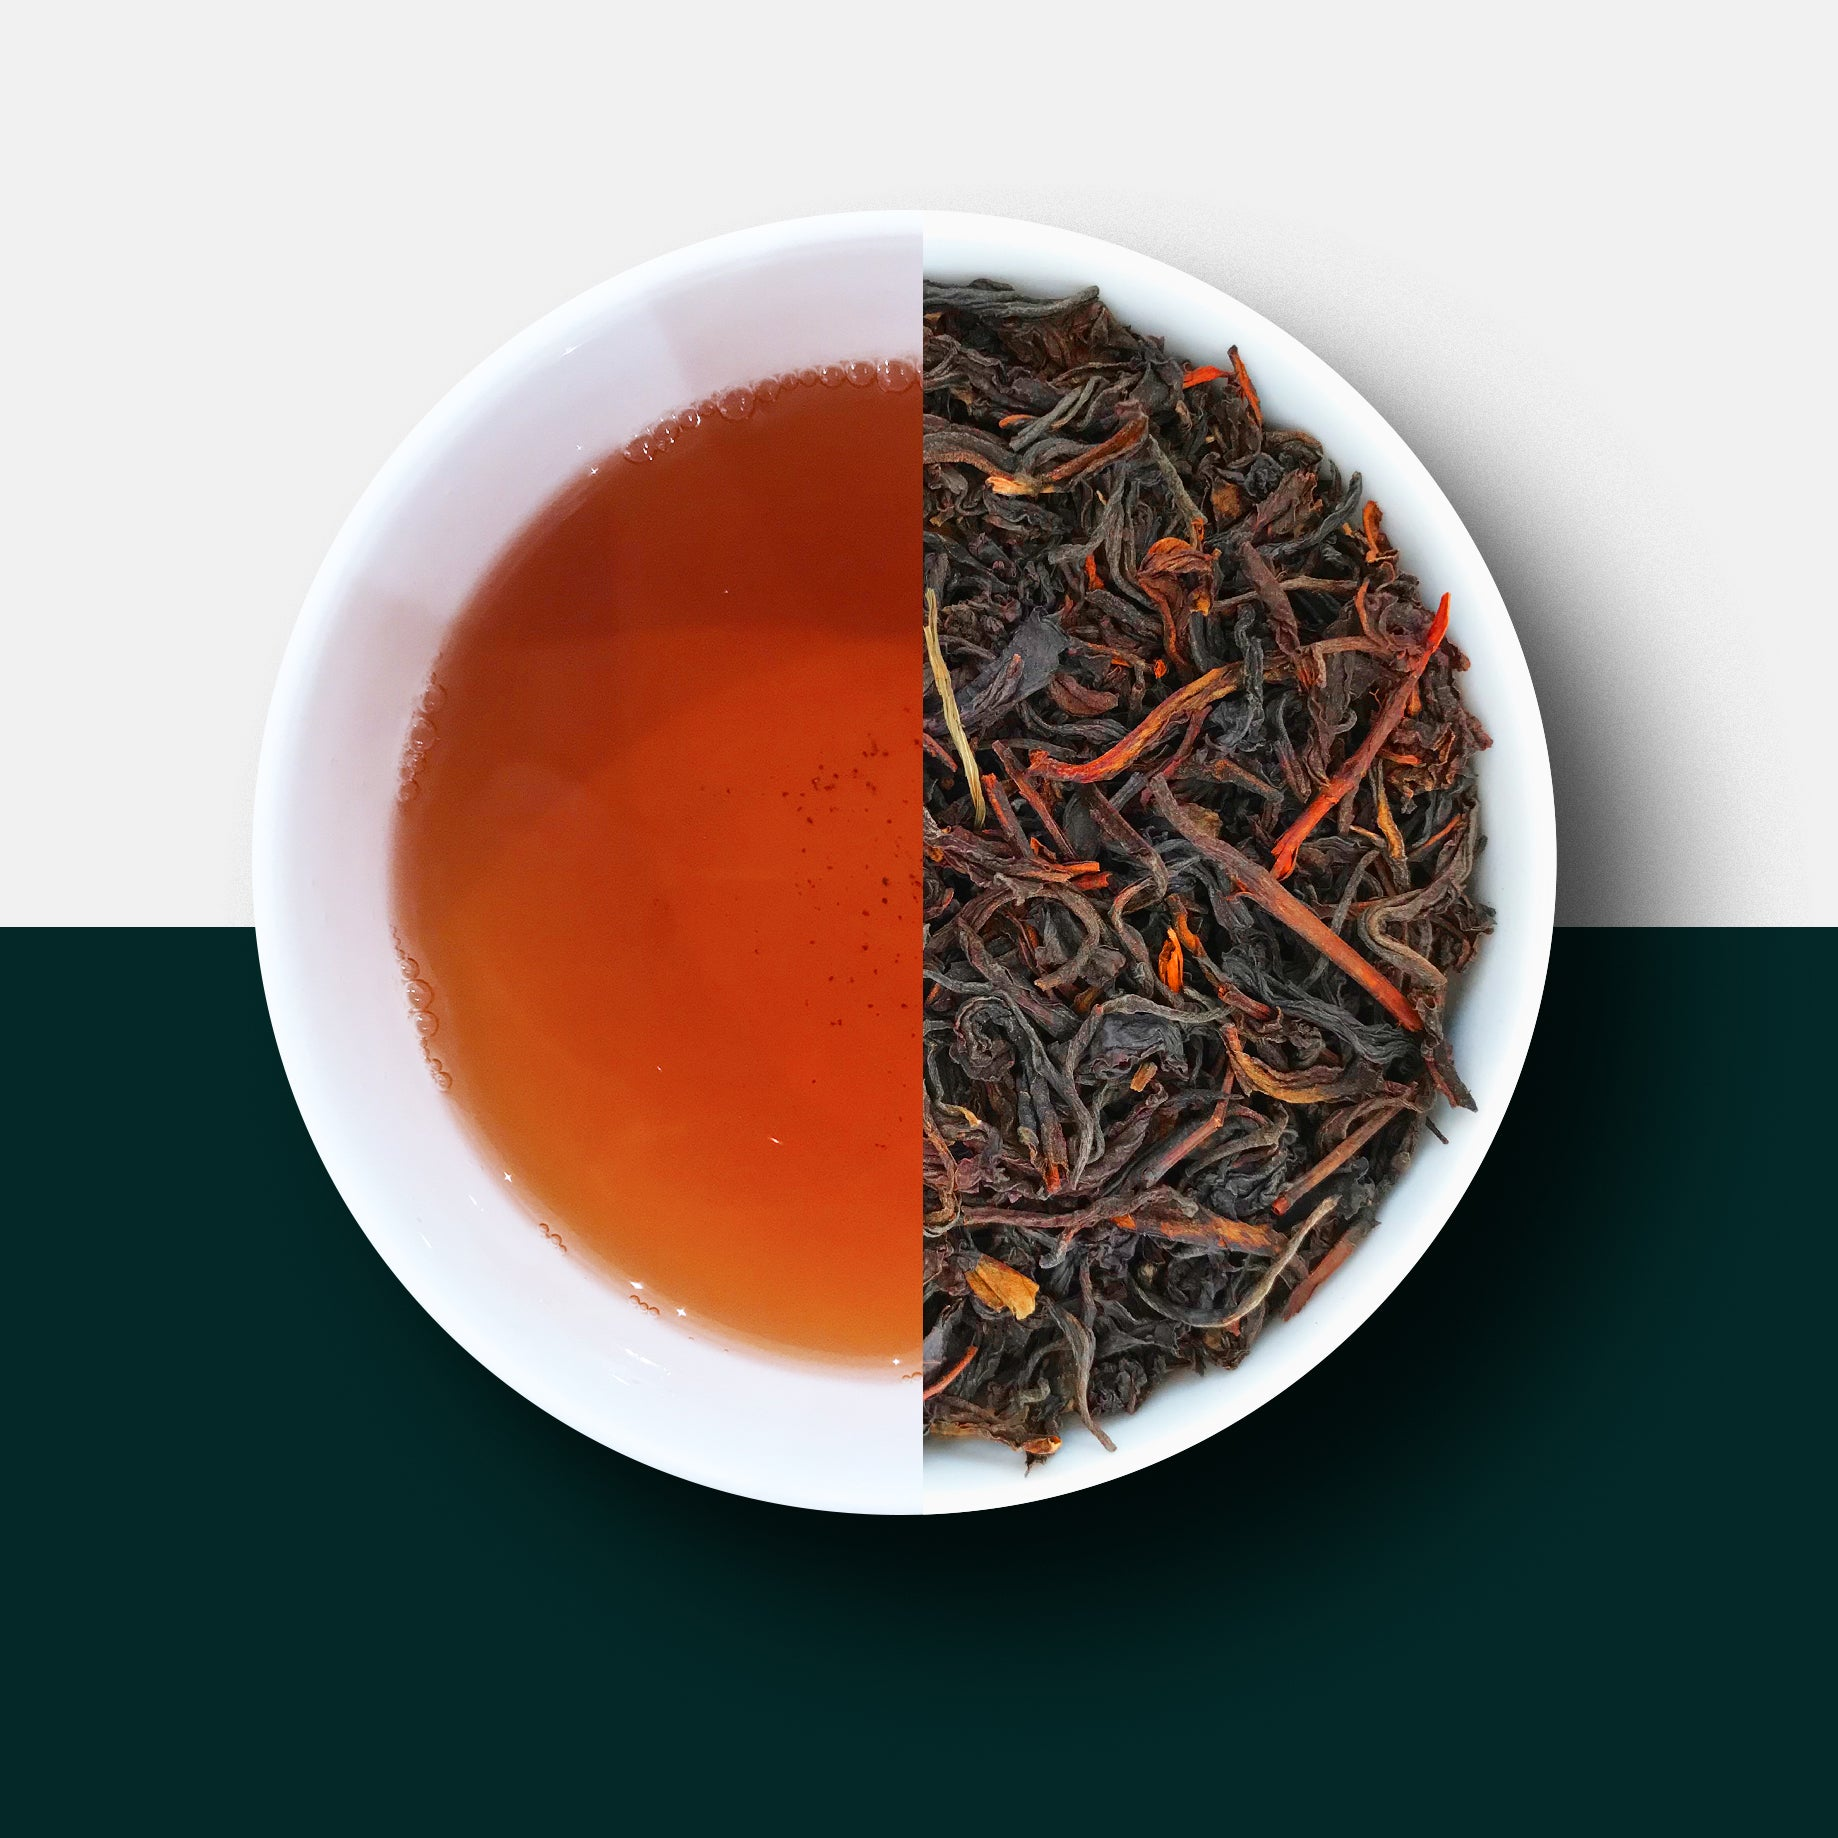 Black Tea - Malawian Smoked Guava Loose Leaf Tea and Liquor